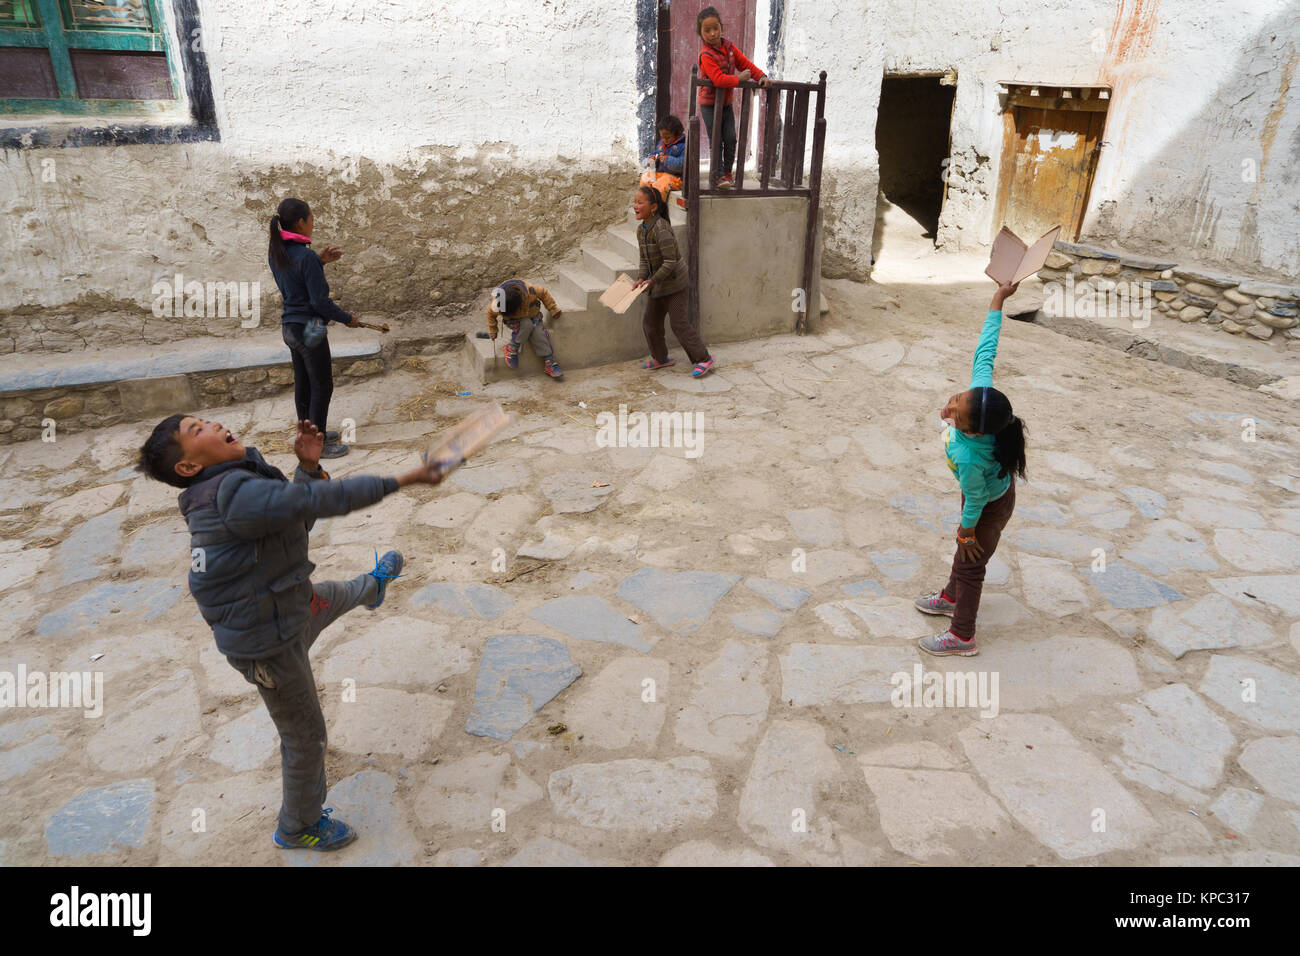 Tibetan children at play, Lo Manthang, Upper Mustang region, Nepal. - Stock Image